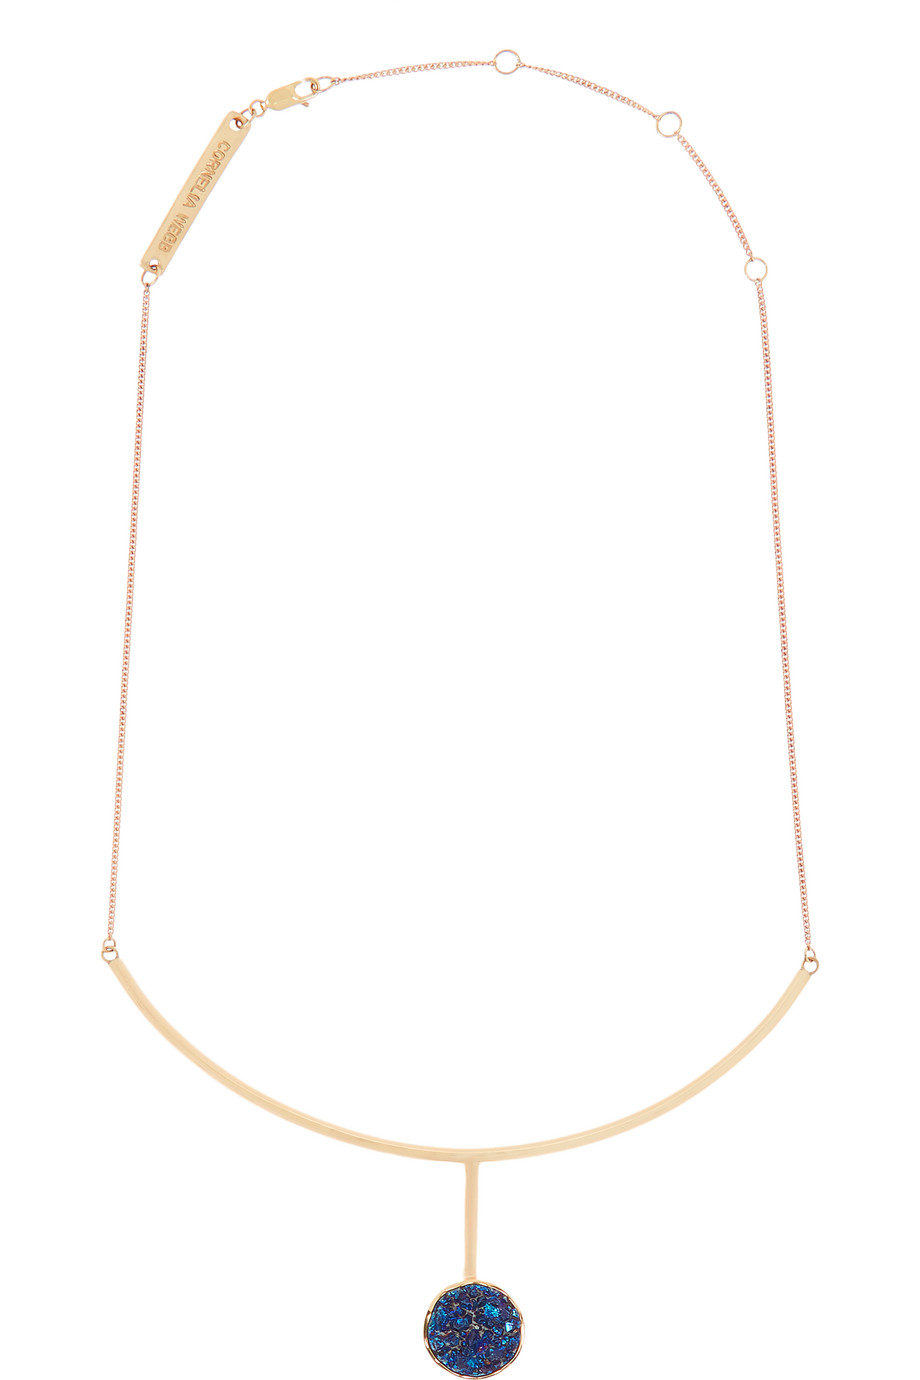 Gold-Plated Druzy Necklace, Women's